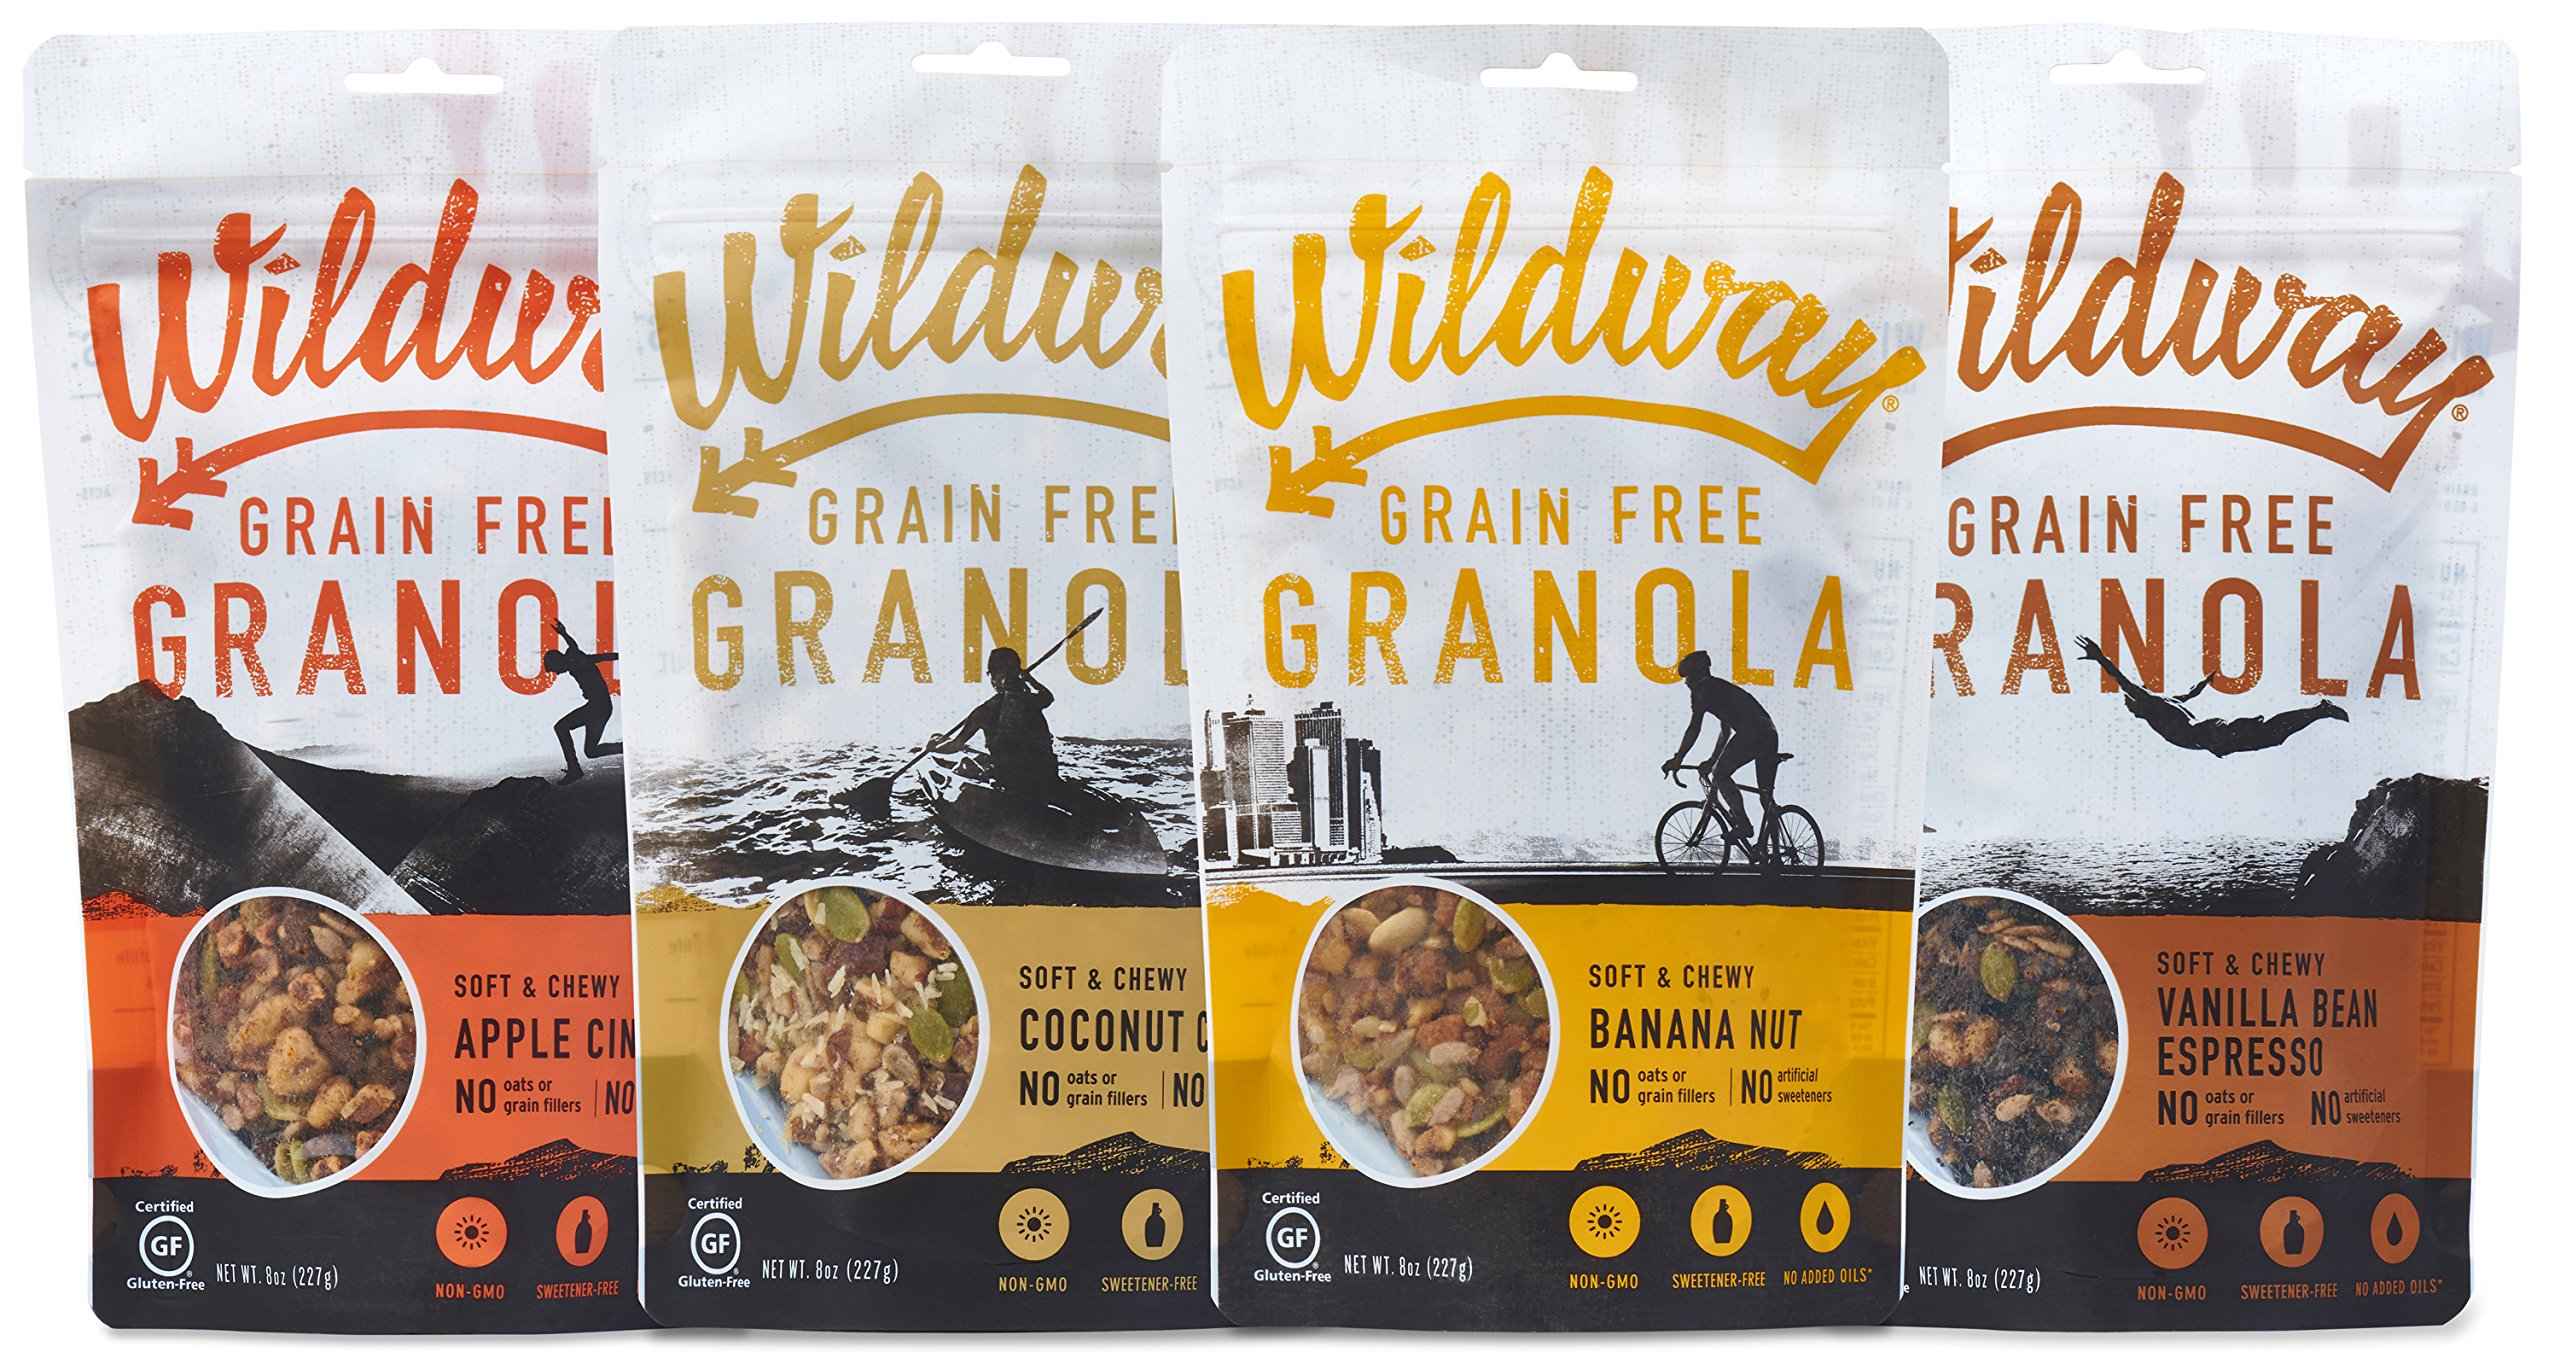 Wildway Vegan Granola | Variety | Certified Gluten Free Granola Breakfast Cereal, Low Carb Snack | Grain-Free, Paleo, Non-GMO, No Artificial Sweetener | 8oz - 4 pack by Wildway